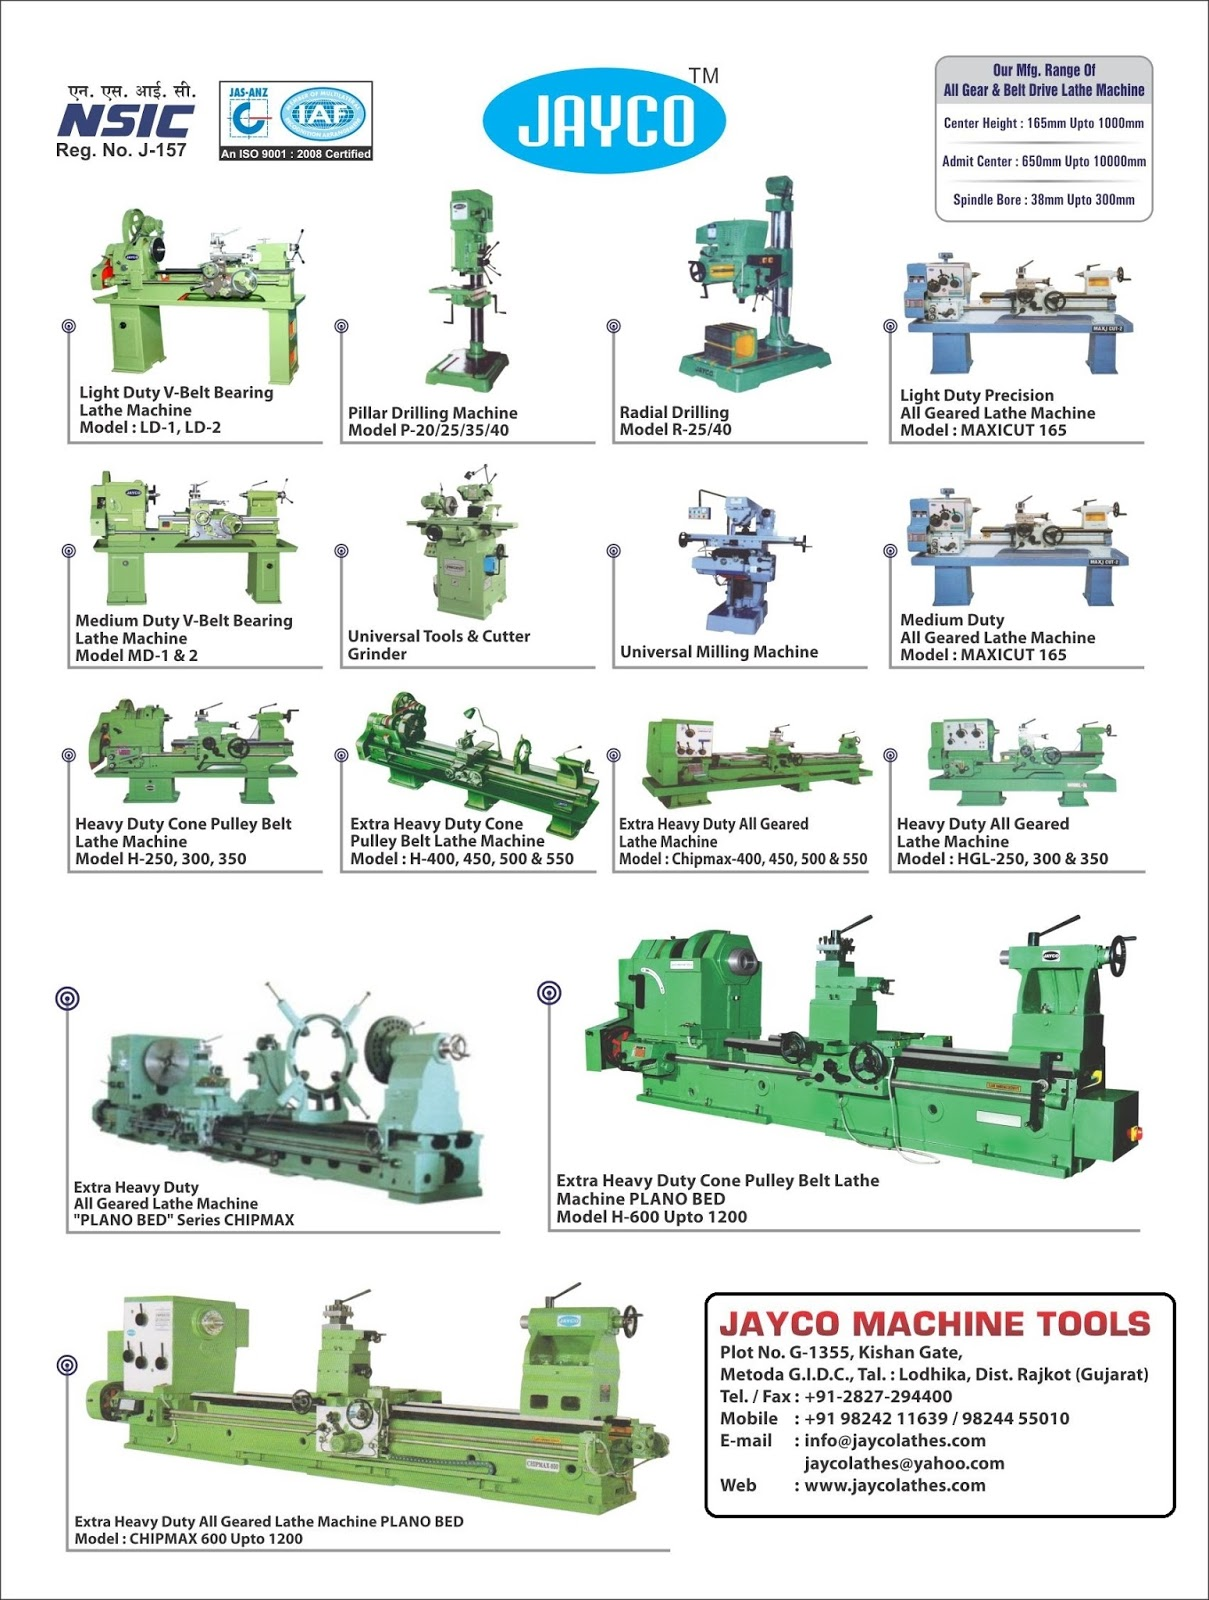 JAYCO MACHINE TOOLS - 9824455010